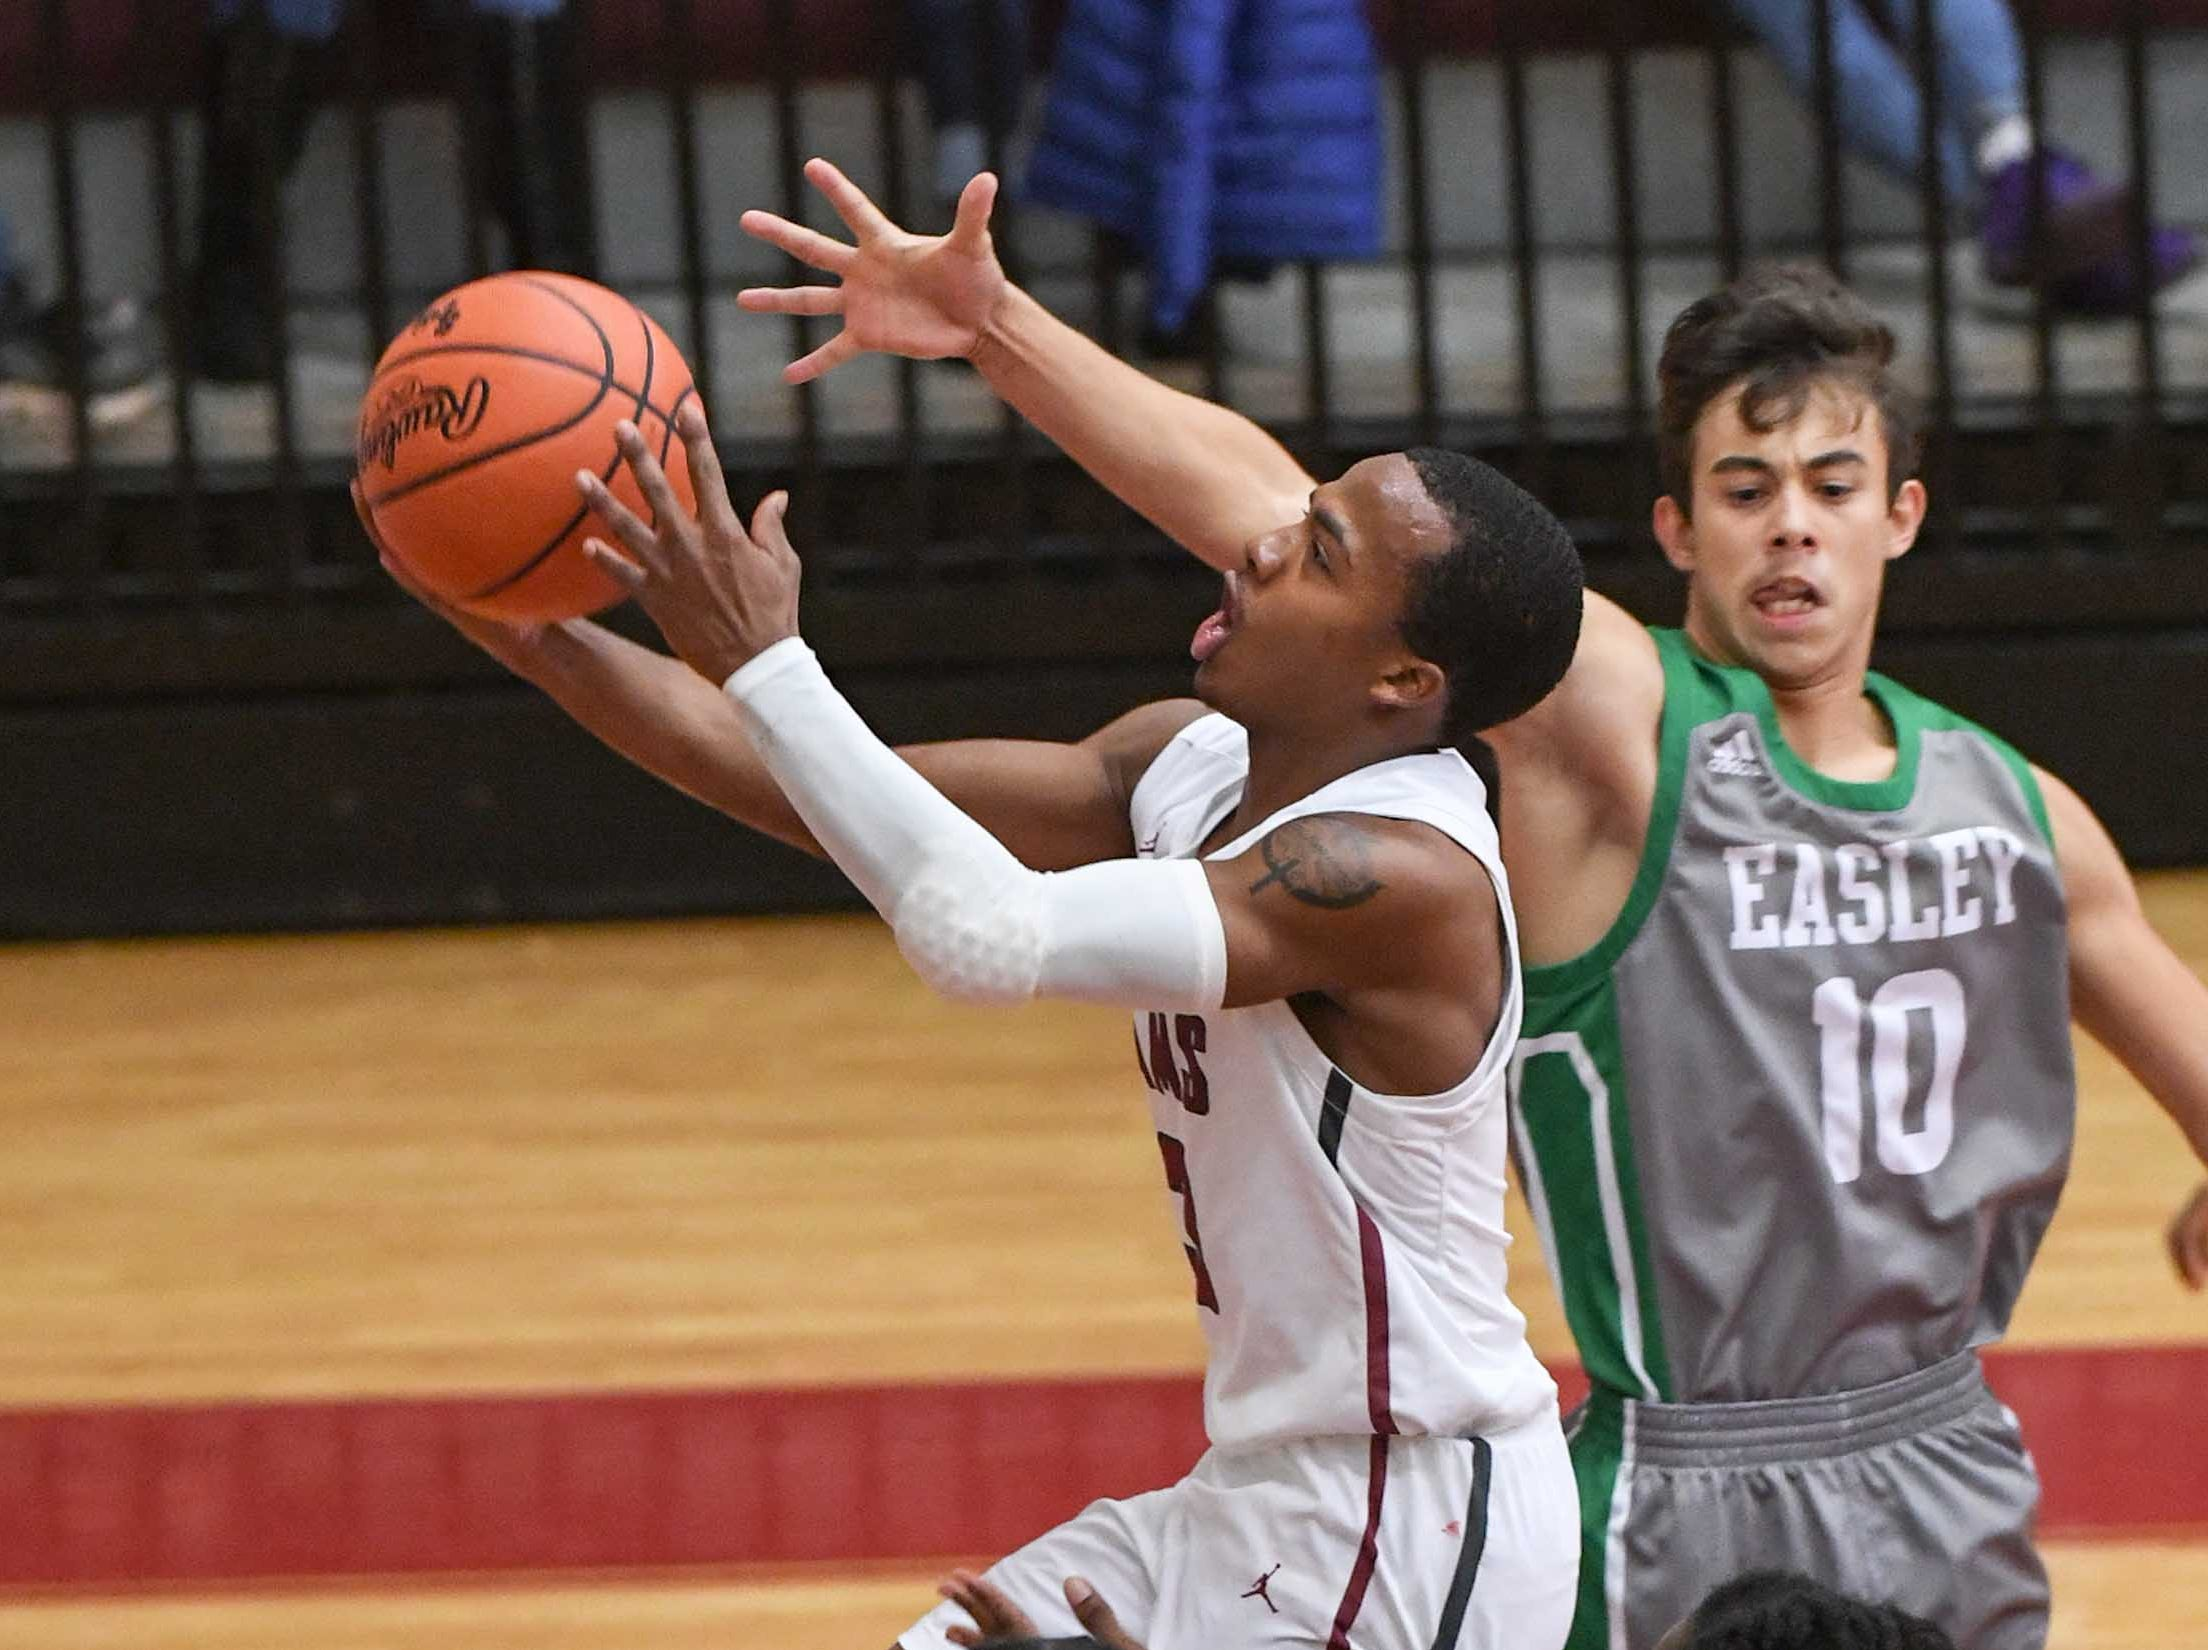 Westside senior Traye Carson(3) shoots around Easley junior Malaki Calhoun(10) during the first quarter at Westside High School in Anderson on Friday.